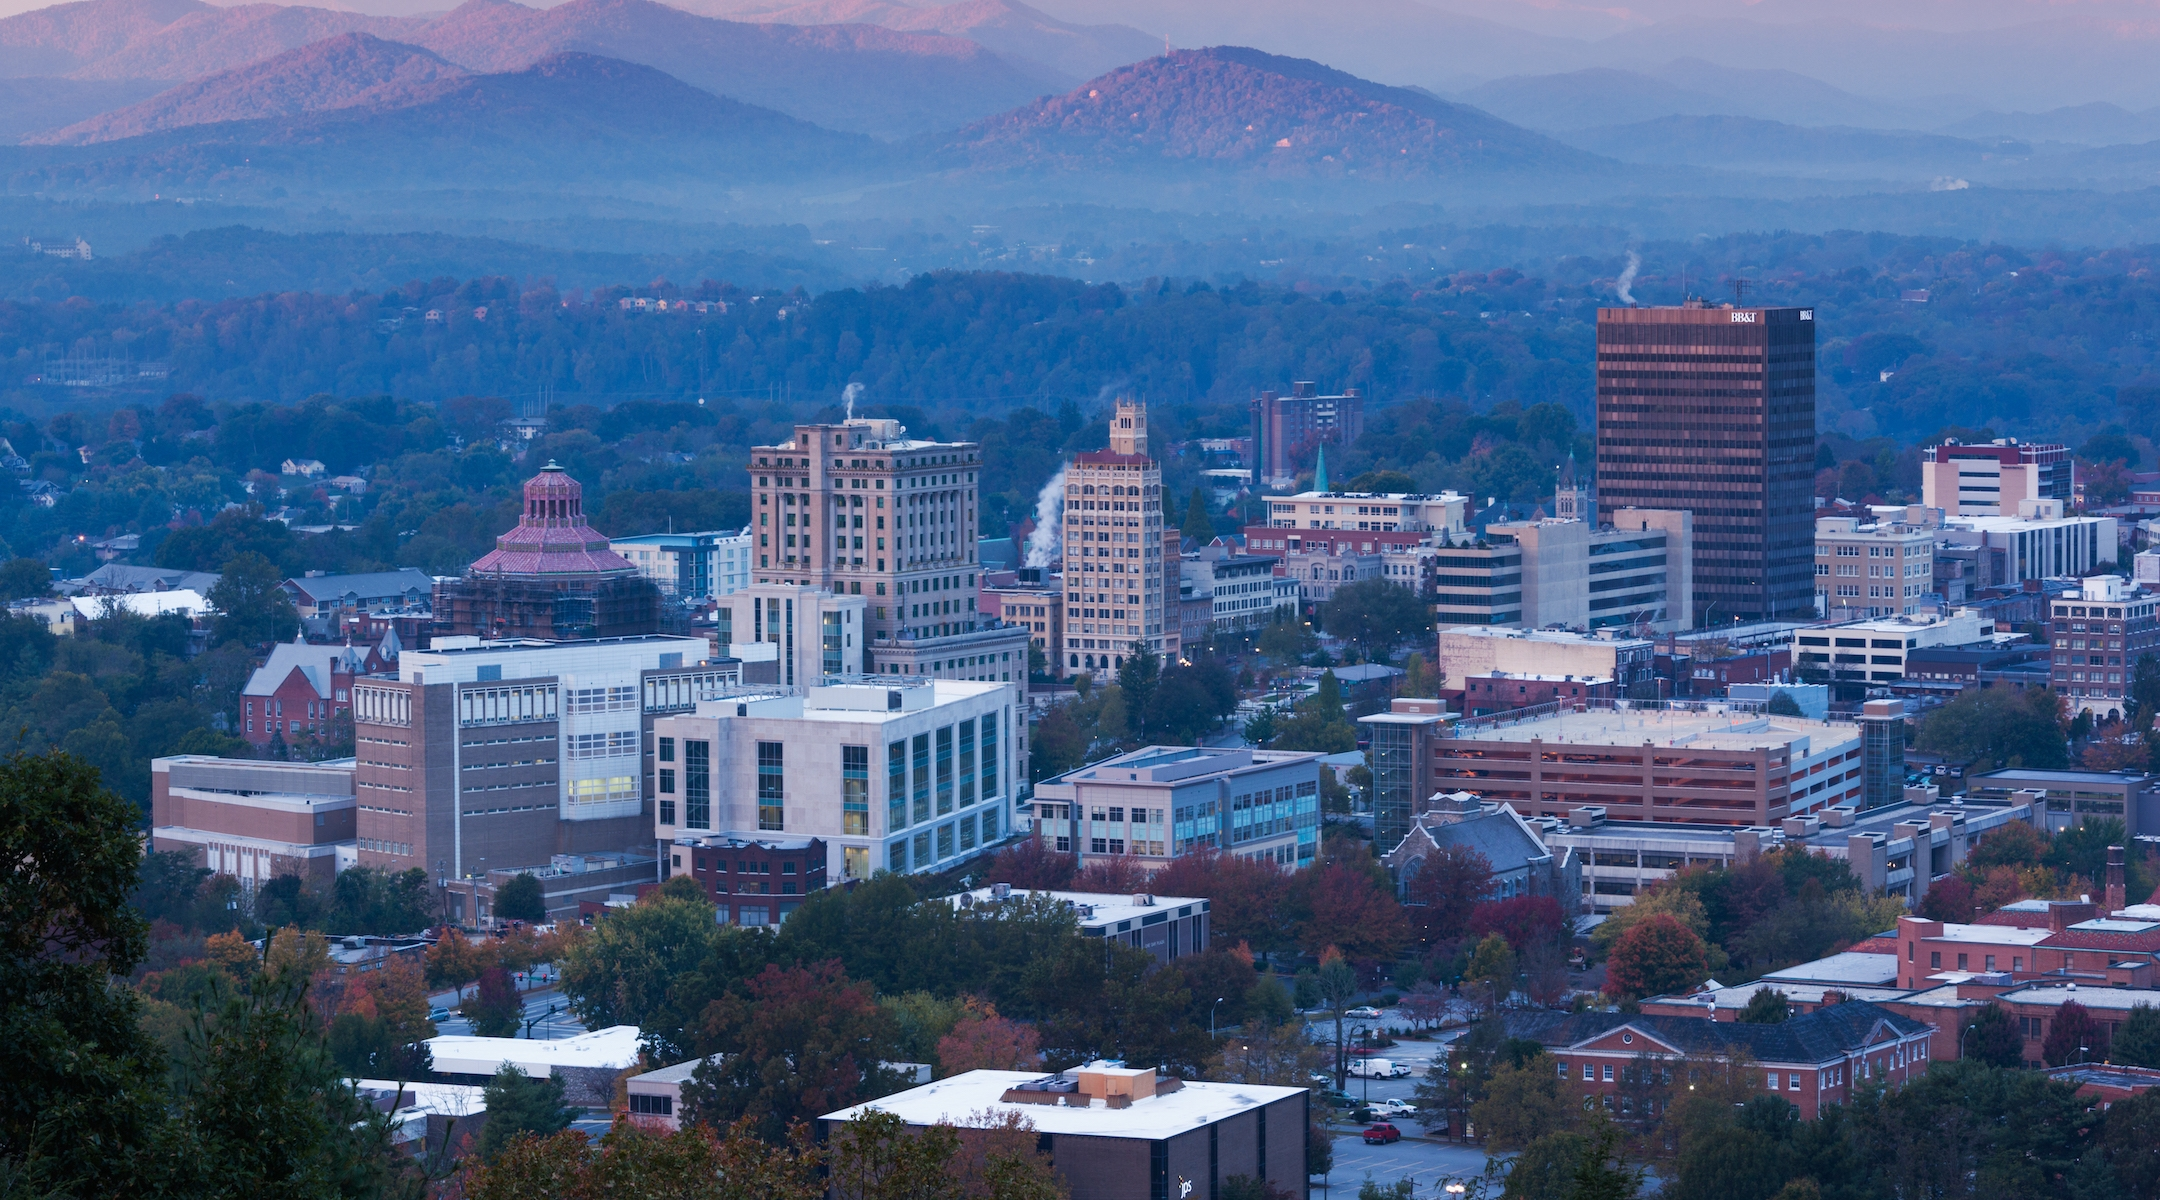 A view of Asheville, North Carolina. (Stock image)